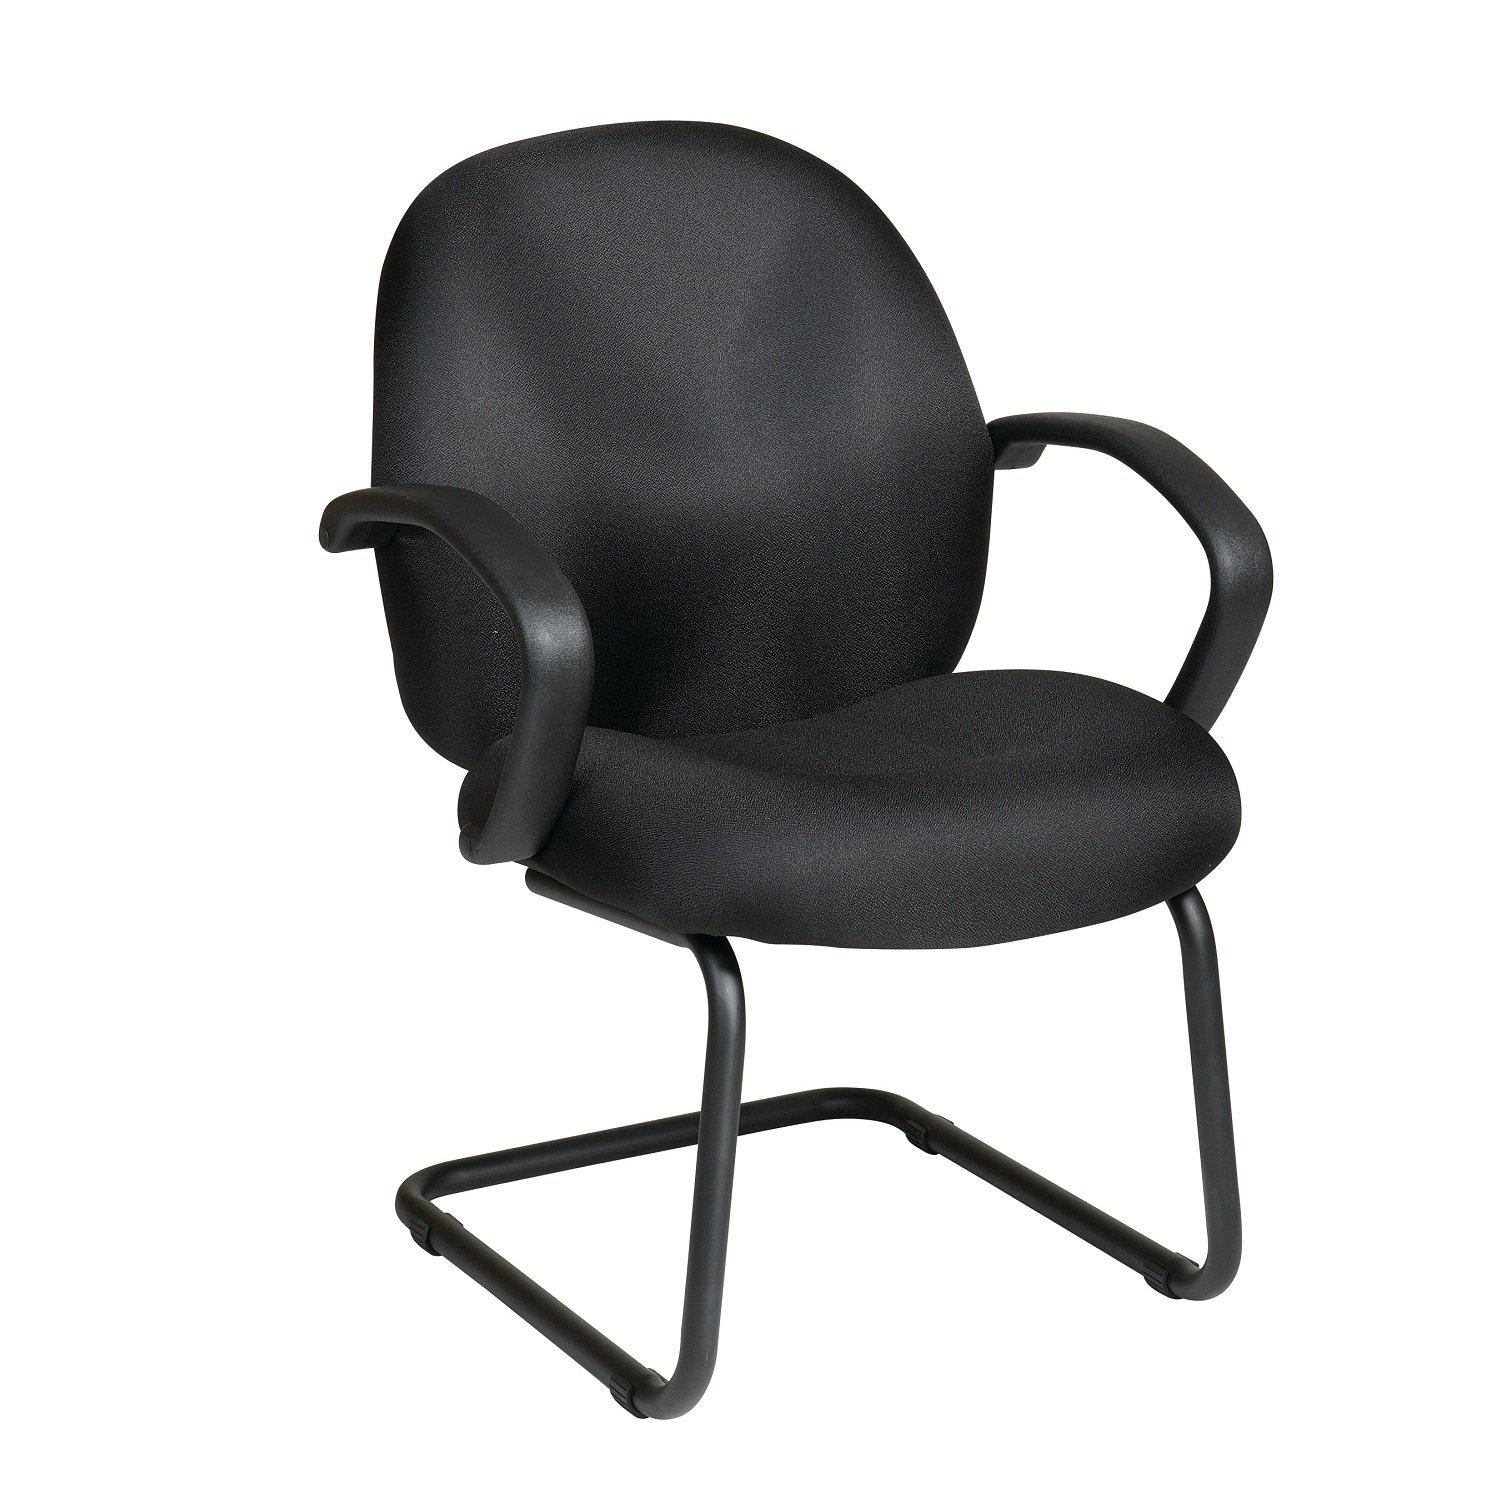 Conference/Visitor's Chair with C-Style Arms